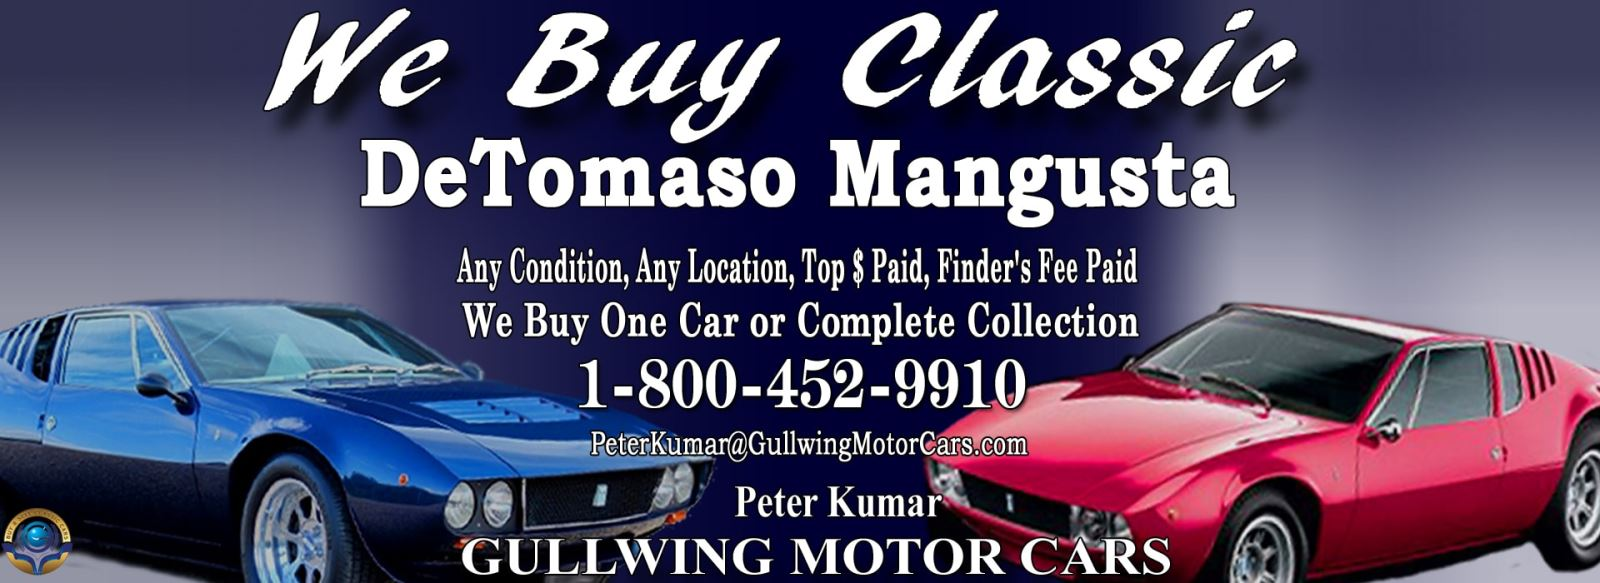 Classic De Tomaso Mangusta for sale, we buy vintage DeTomaso Mangusta. Call Peter Kumar. Gullwing Motor De Tomaso Panetra, De Tomaso Mangusta